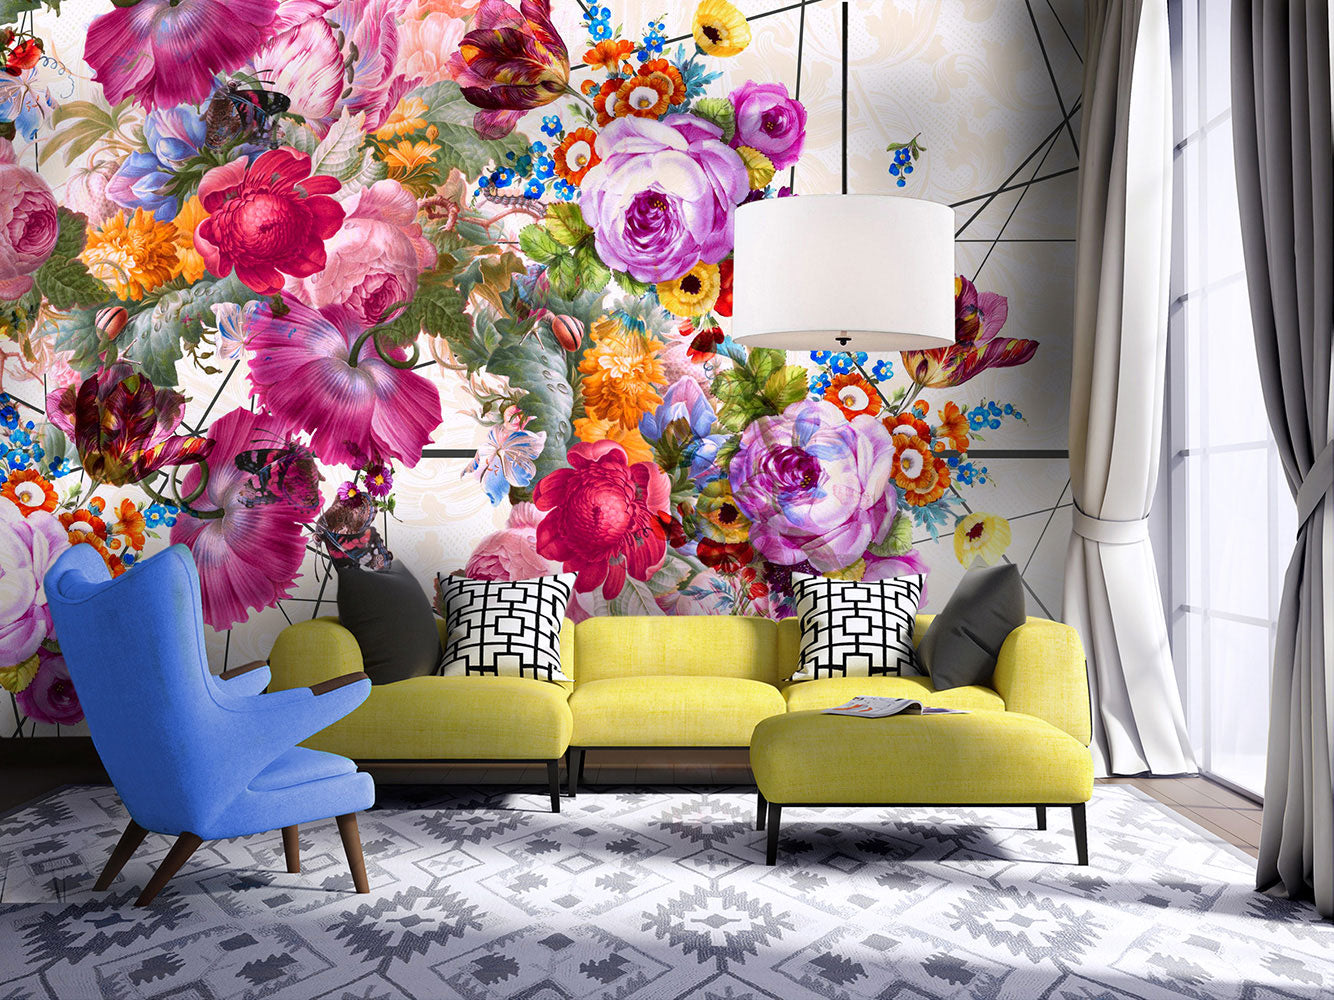 Bloom Boom / Large Floral Wall Mural By Back To The Wall